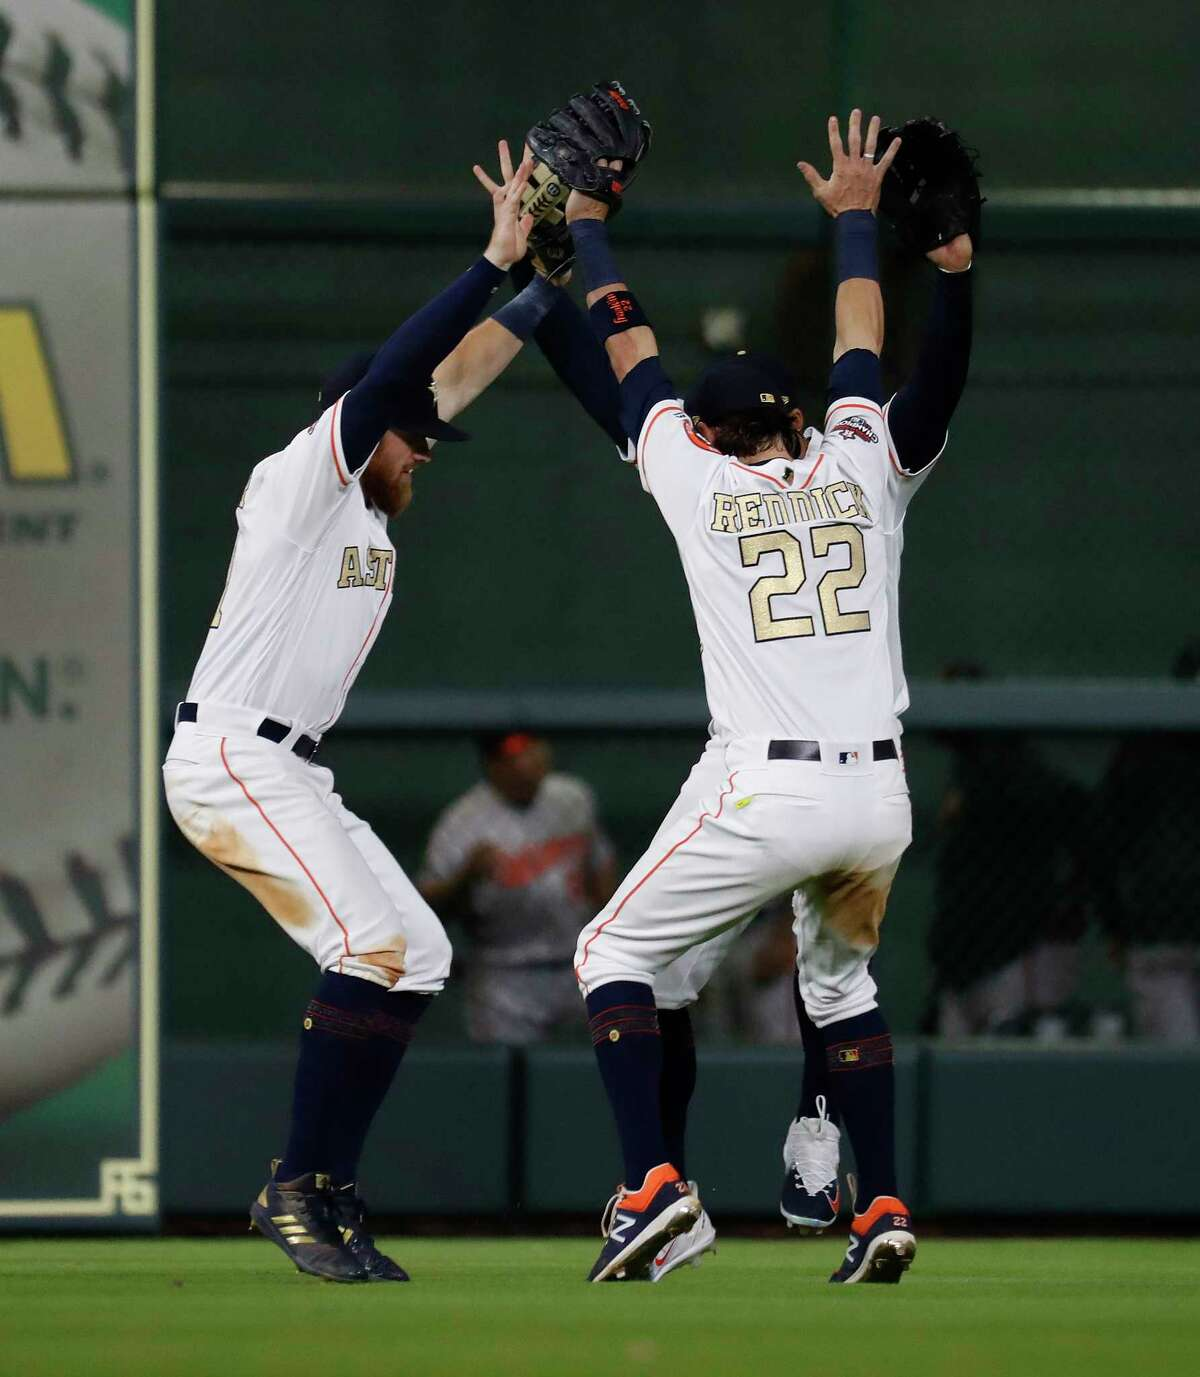 Houston Astros Josh Reddick (22), Derek Fisher (21), and George Springer (4) celebrate the Astros win over Baltimore Orioles after the home opener MLB baseball game at Minute Maid Park, Monday, April 2, 2018, in Houston.